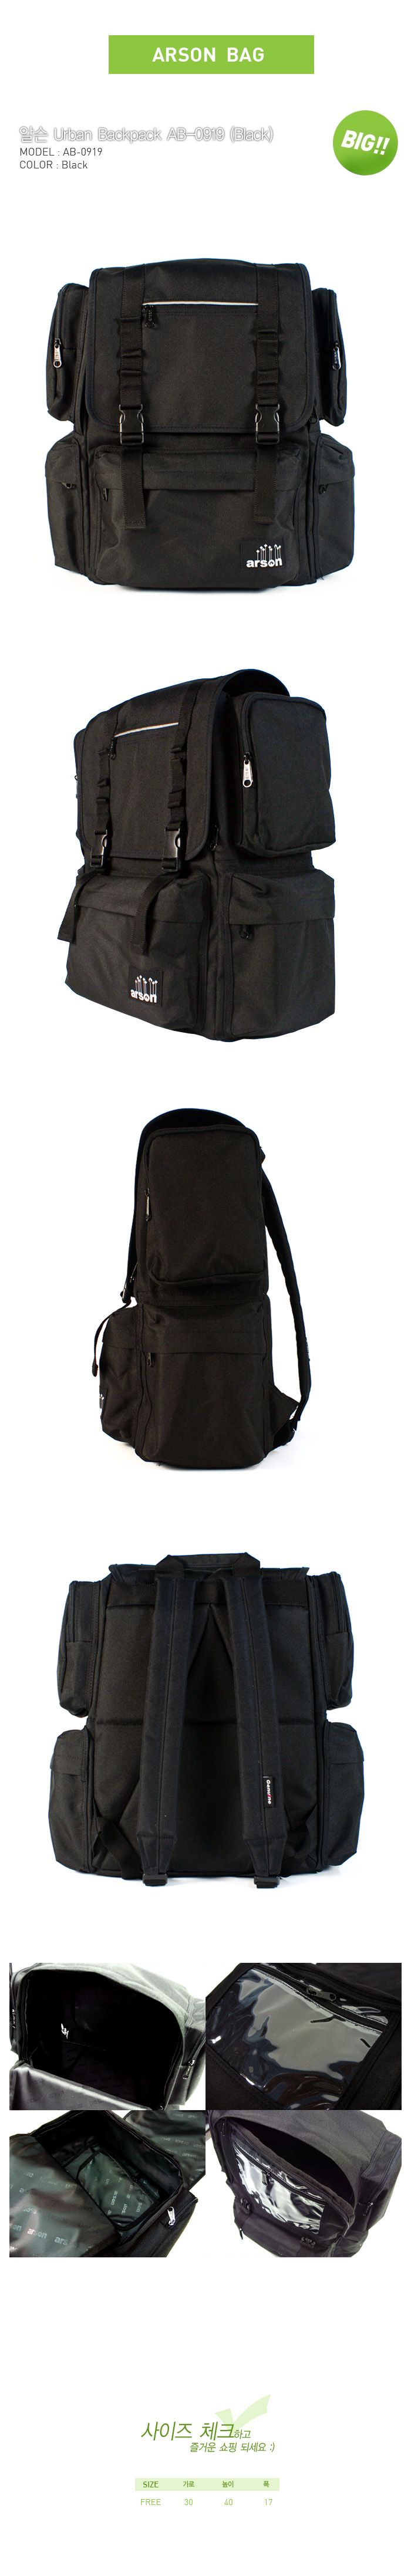 [ ARSON ] AB-0919 (Black)/Backpack School Bag